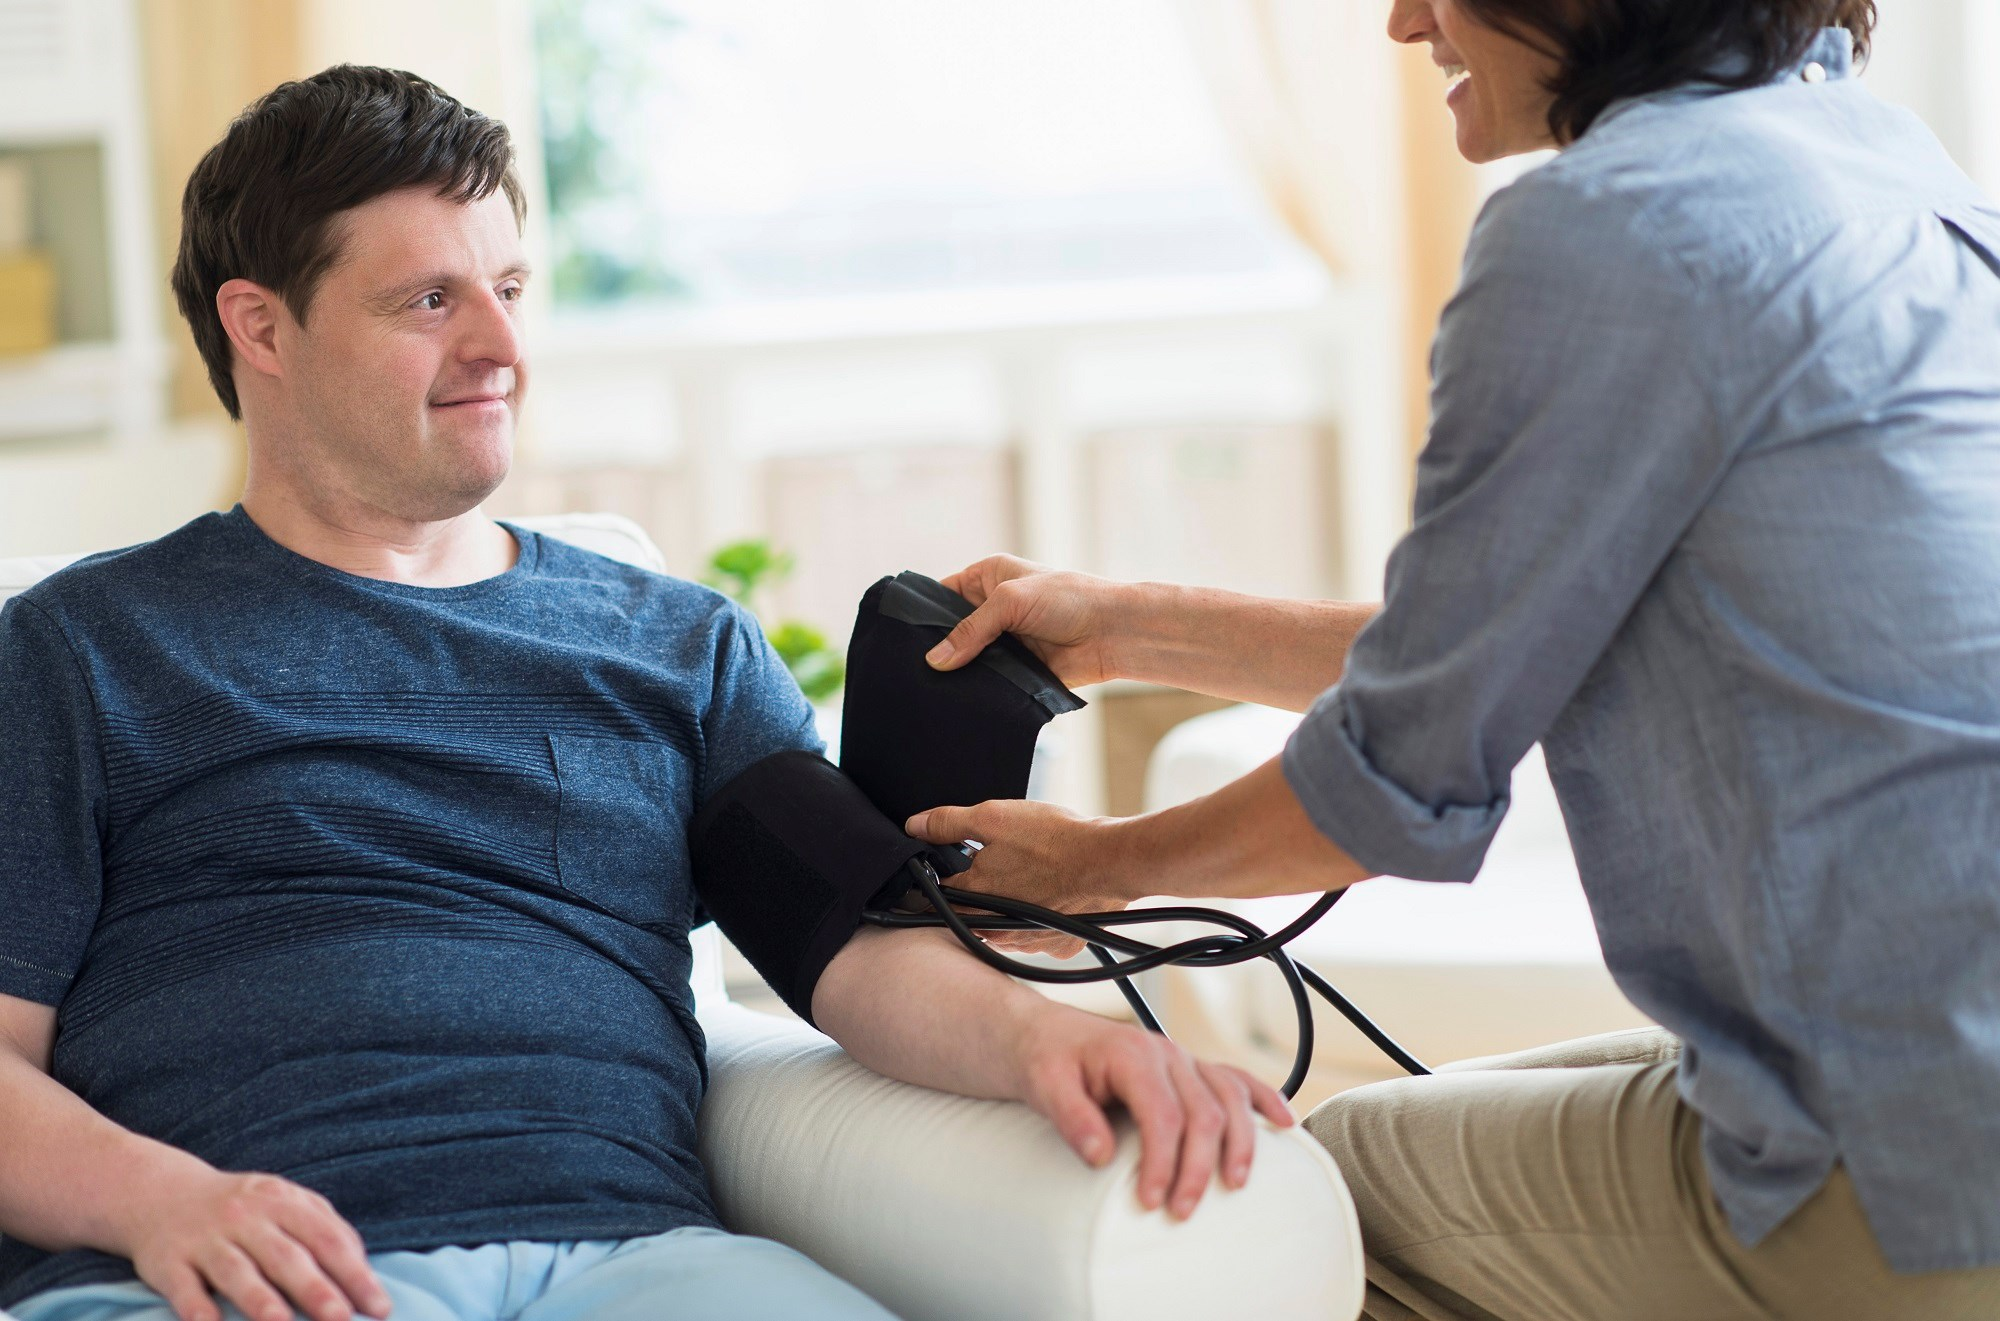 Blood Pressure Screen in Down Syndrome May Help Identify Moyamoya Syndrome Risk